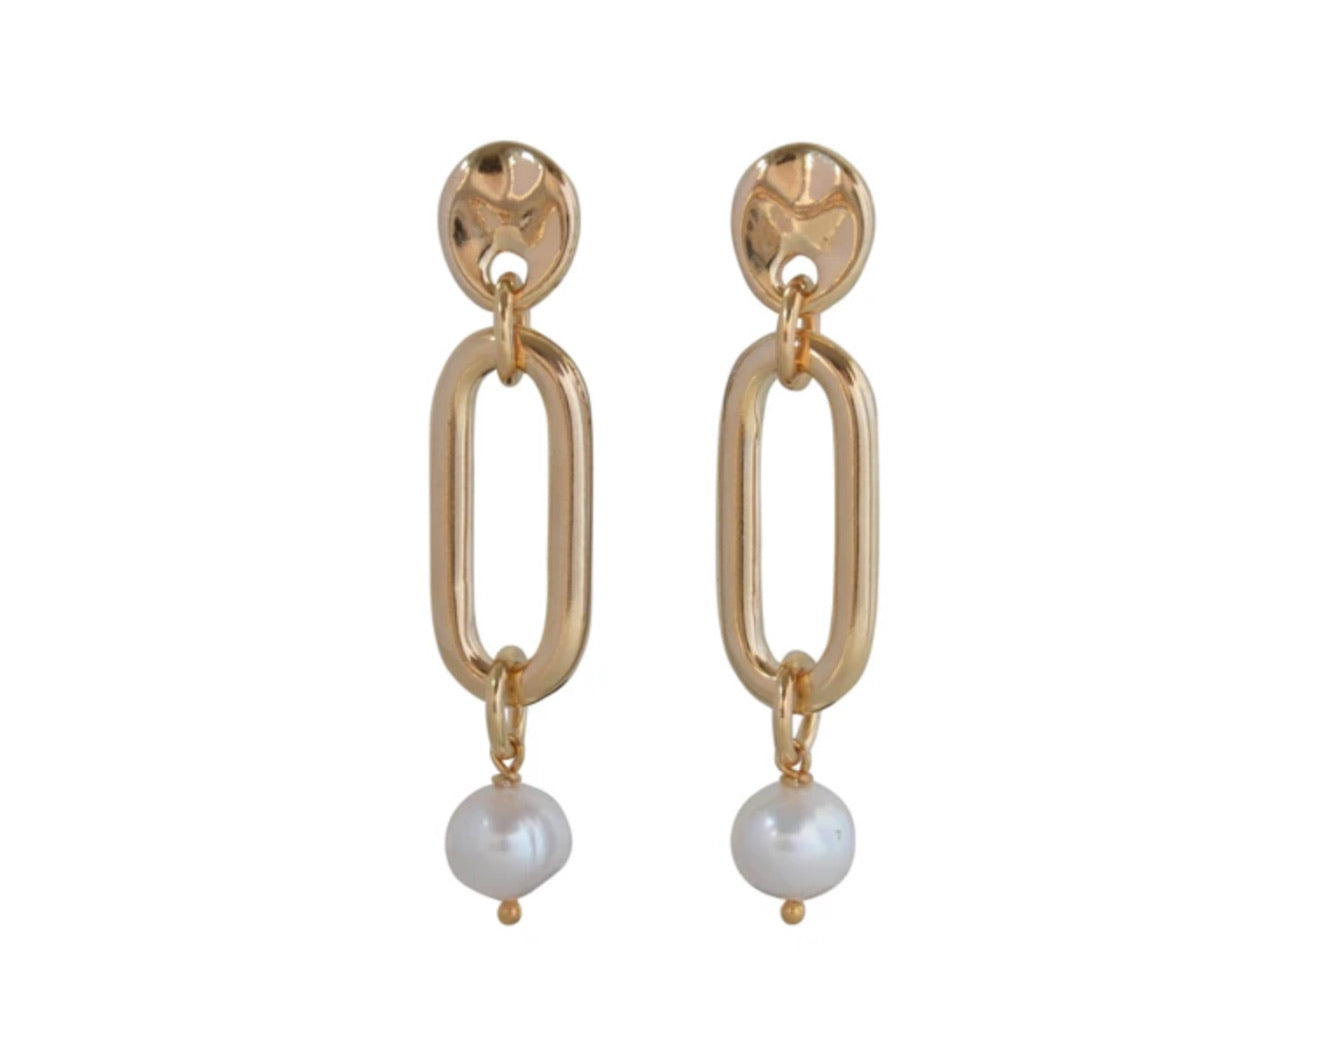 Vidda Lola Earrings